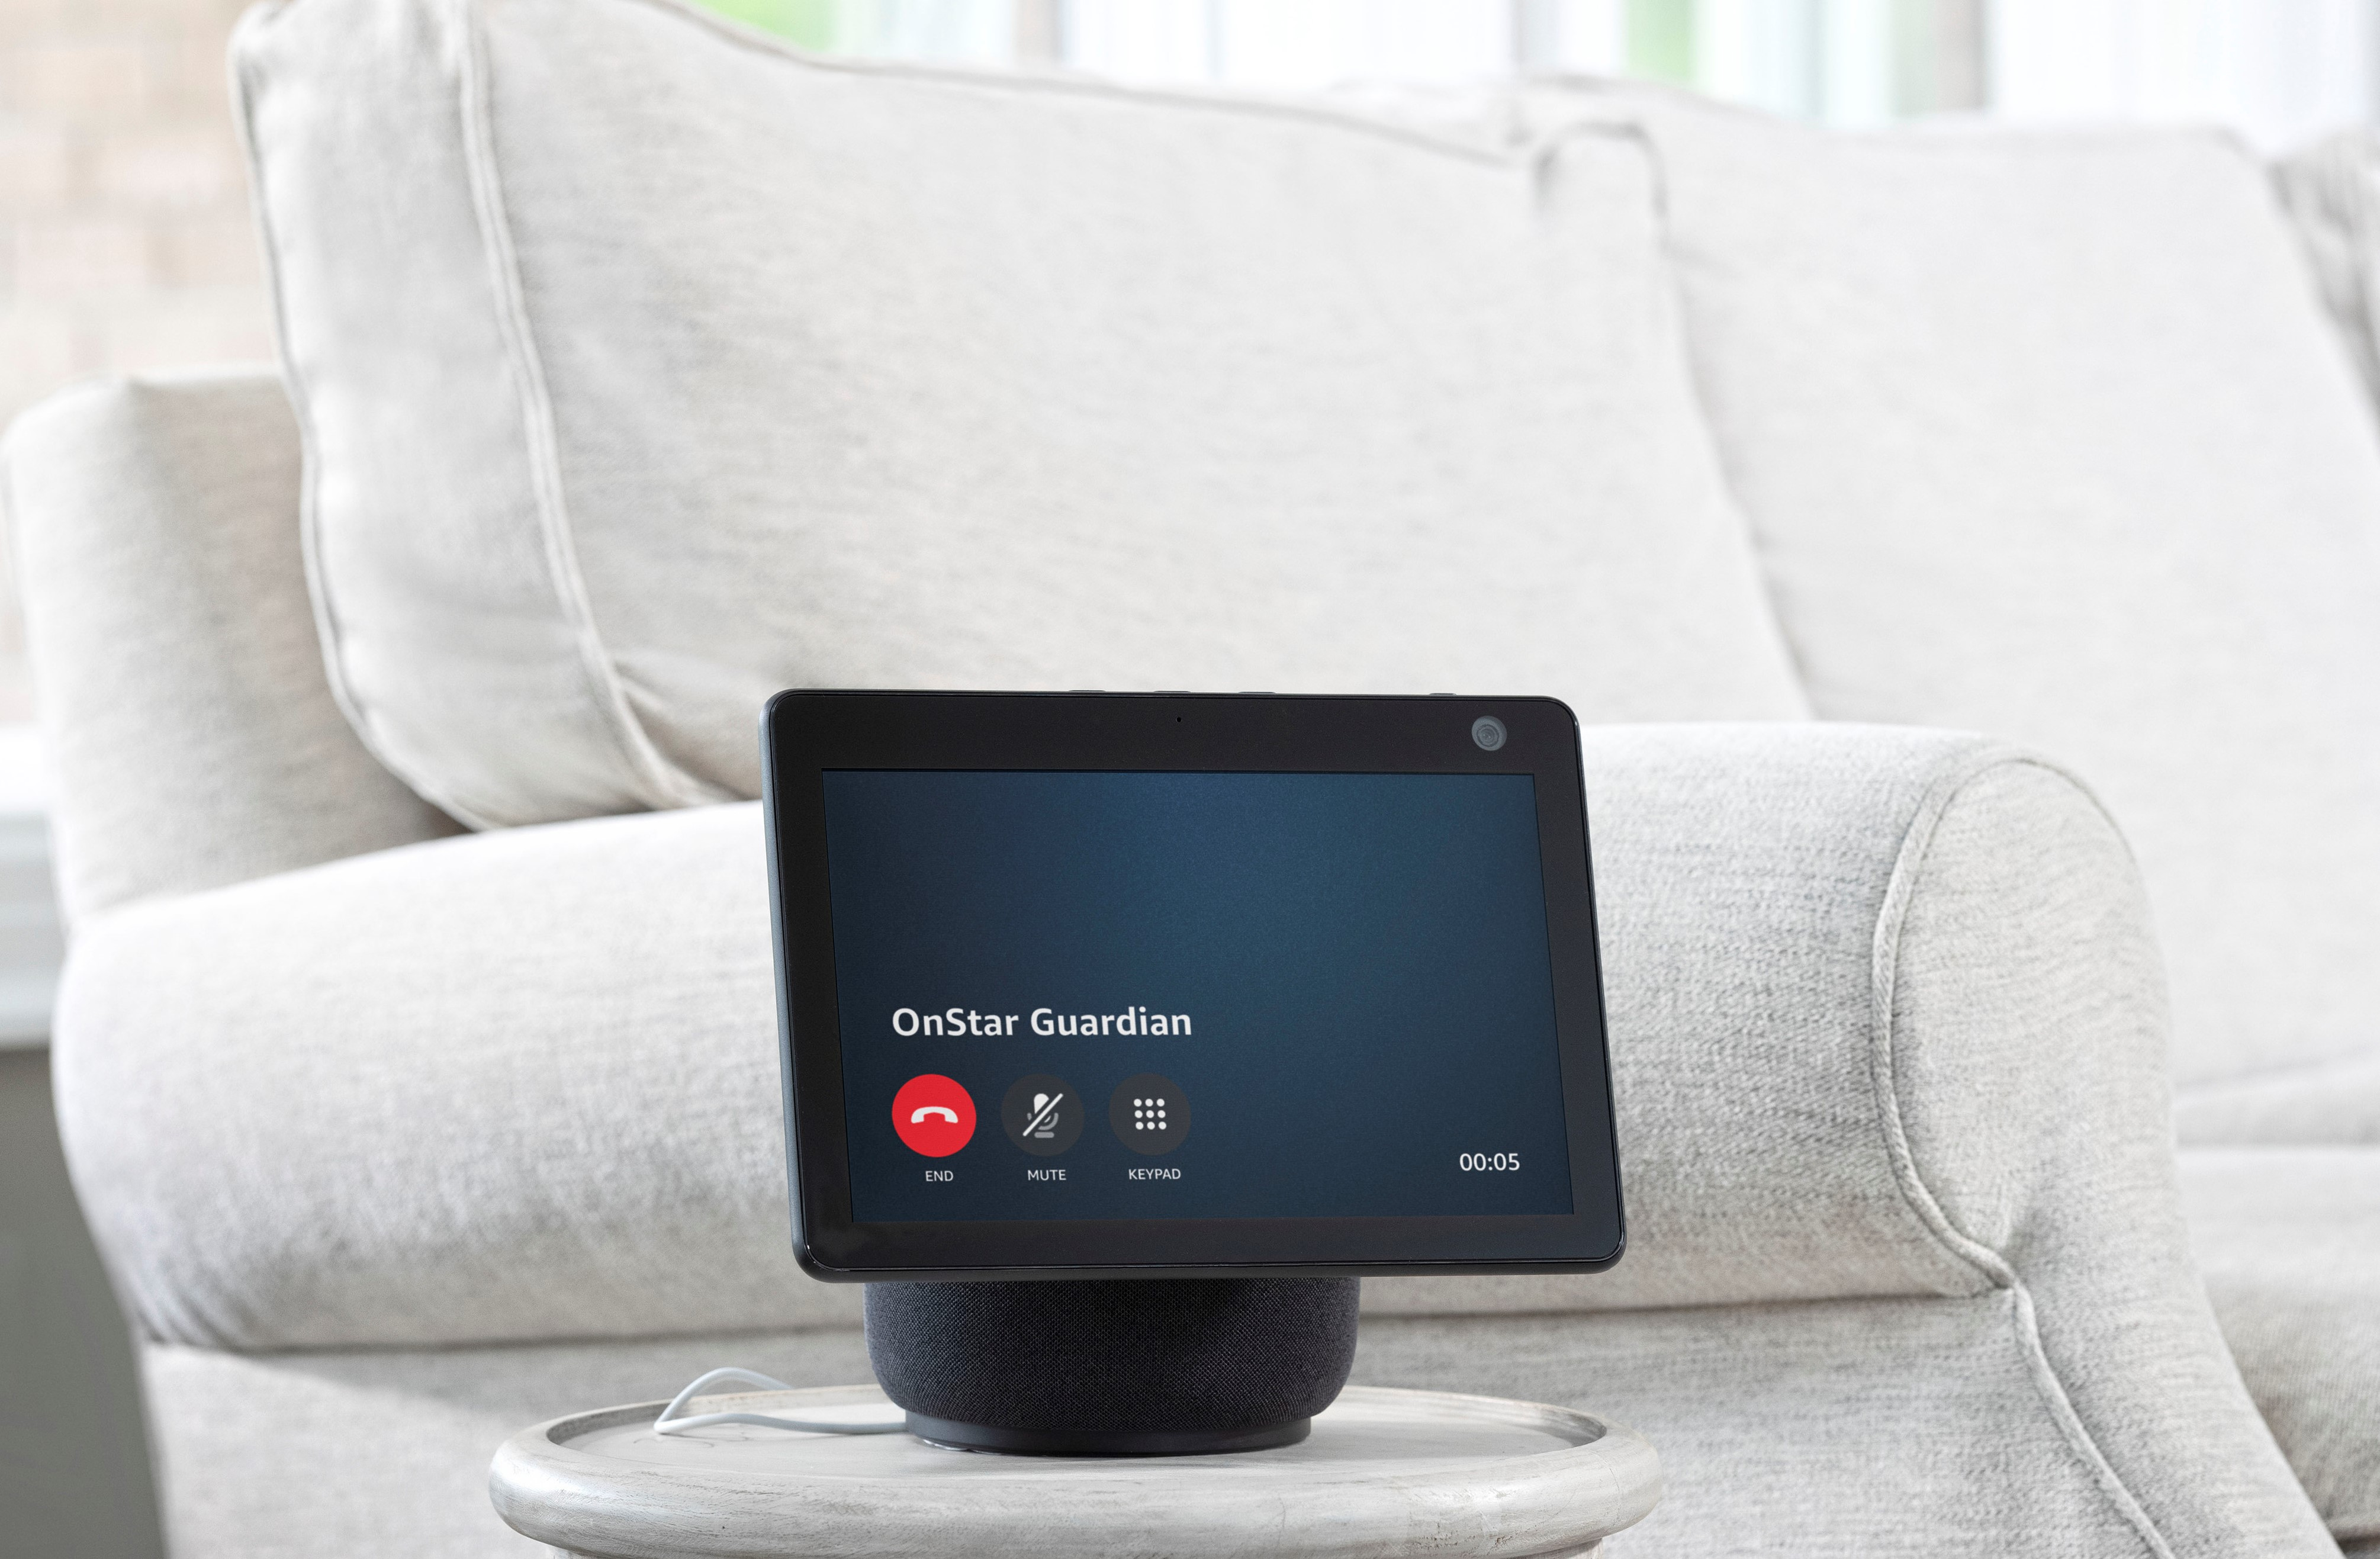 OnStar emergency services will be available through Alexa starting in October